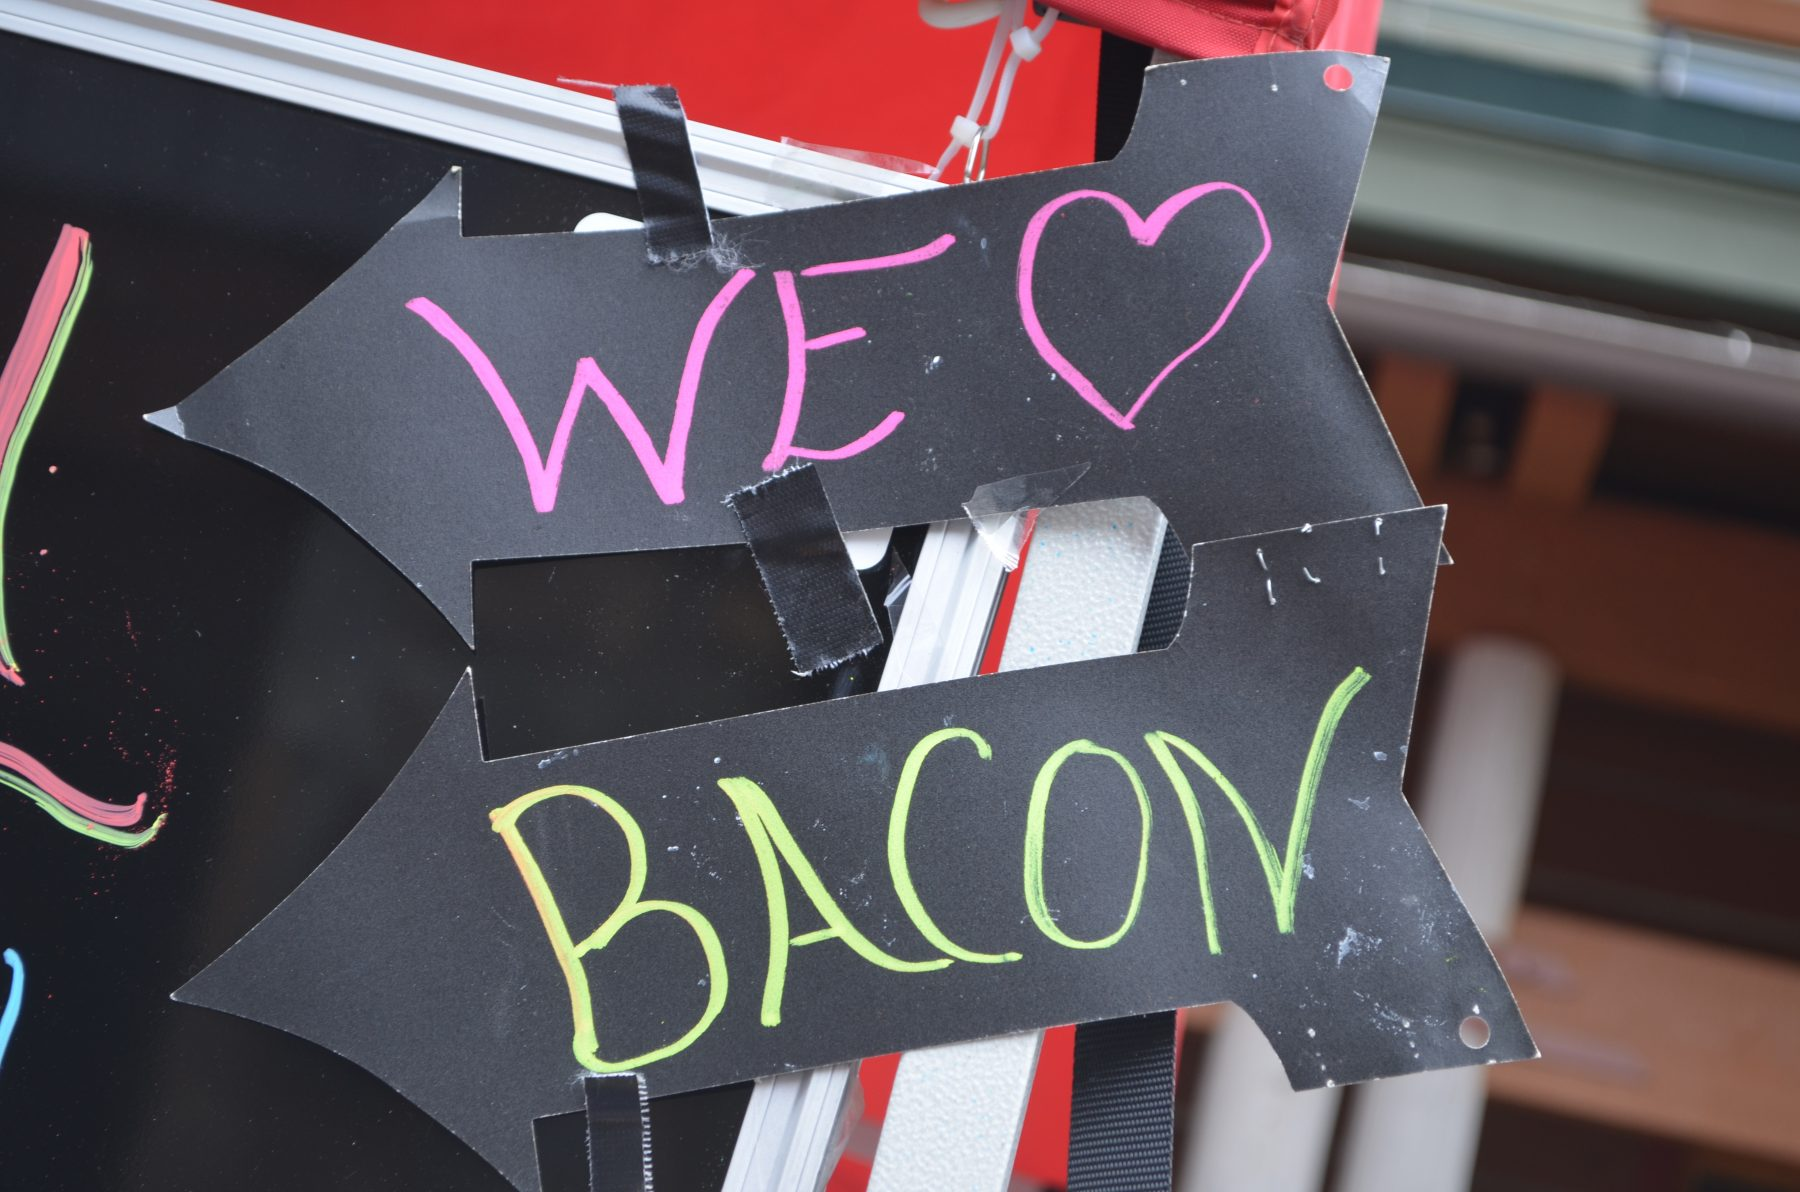 10 WAYS TO SHOW HOW MUCH YOU LOVE BACON!